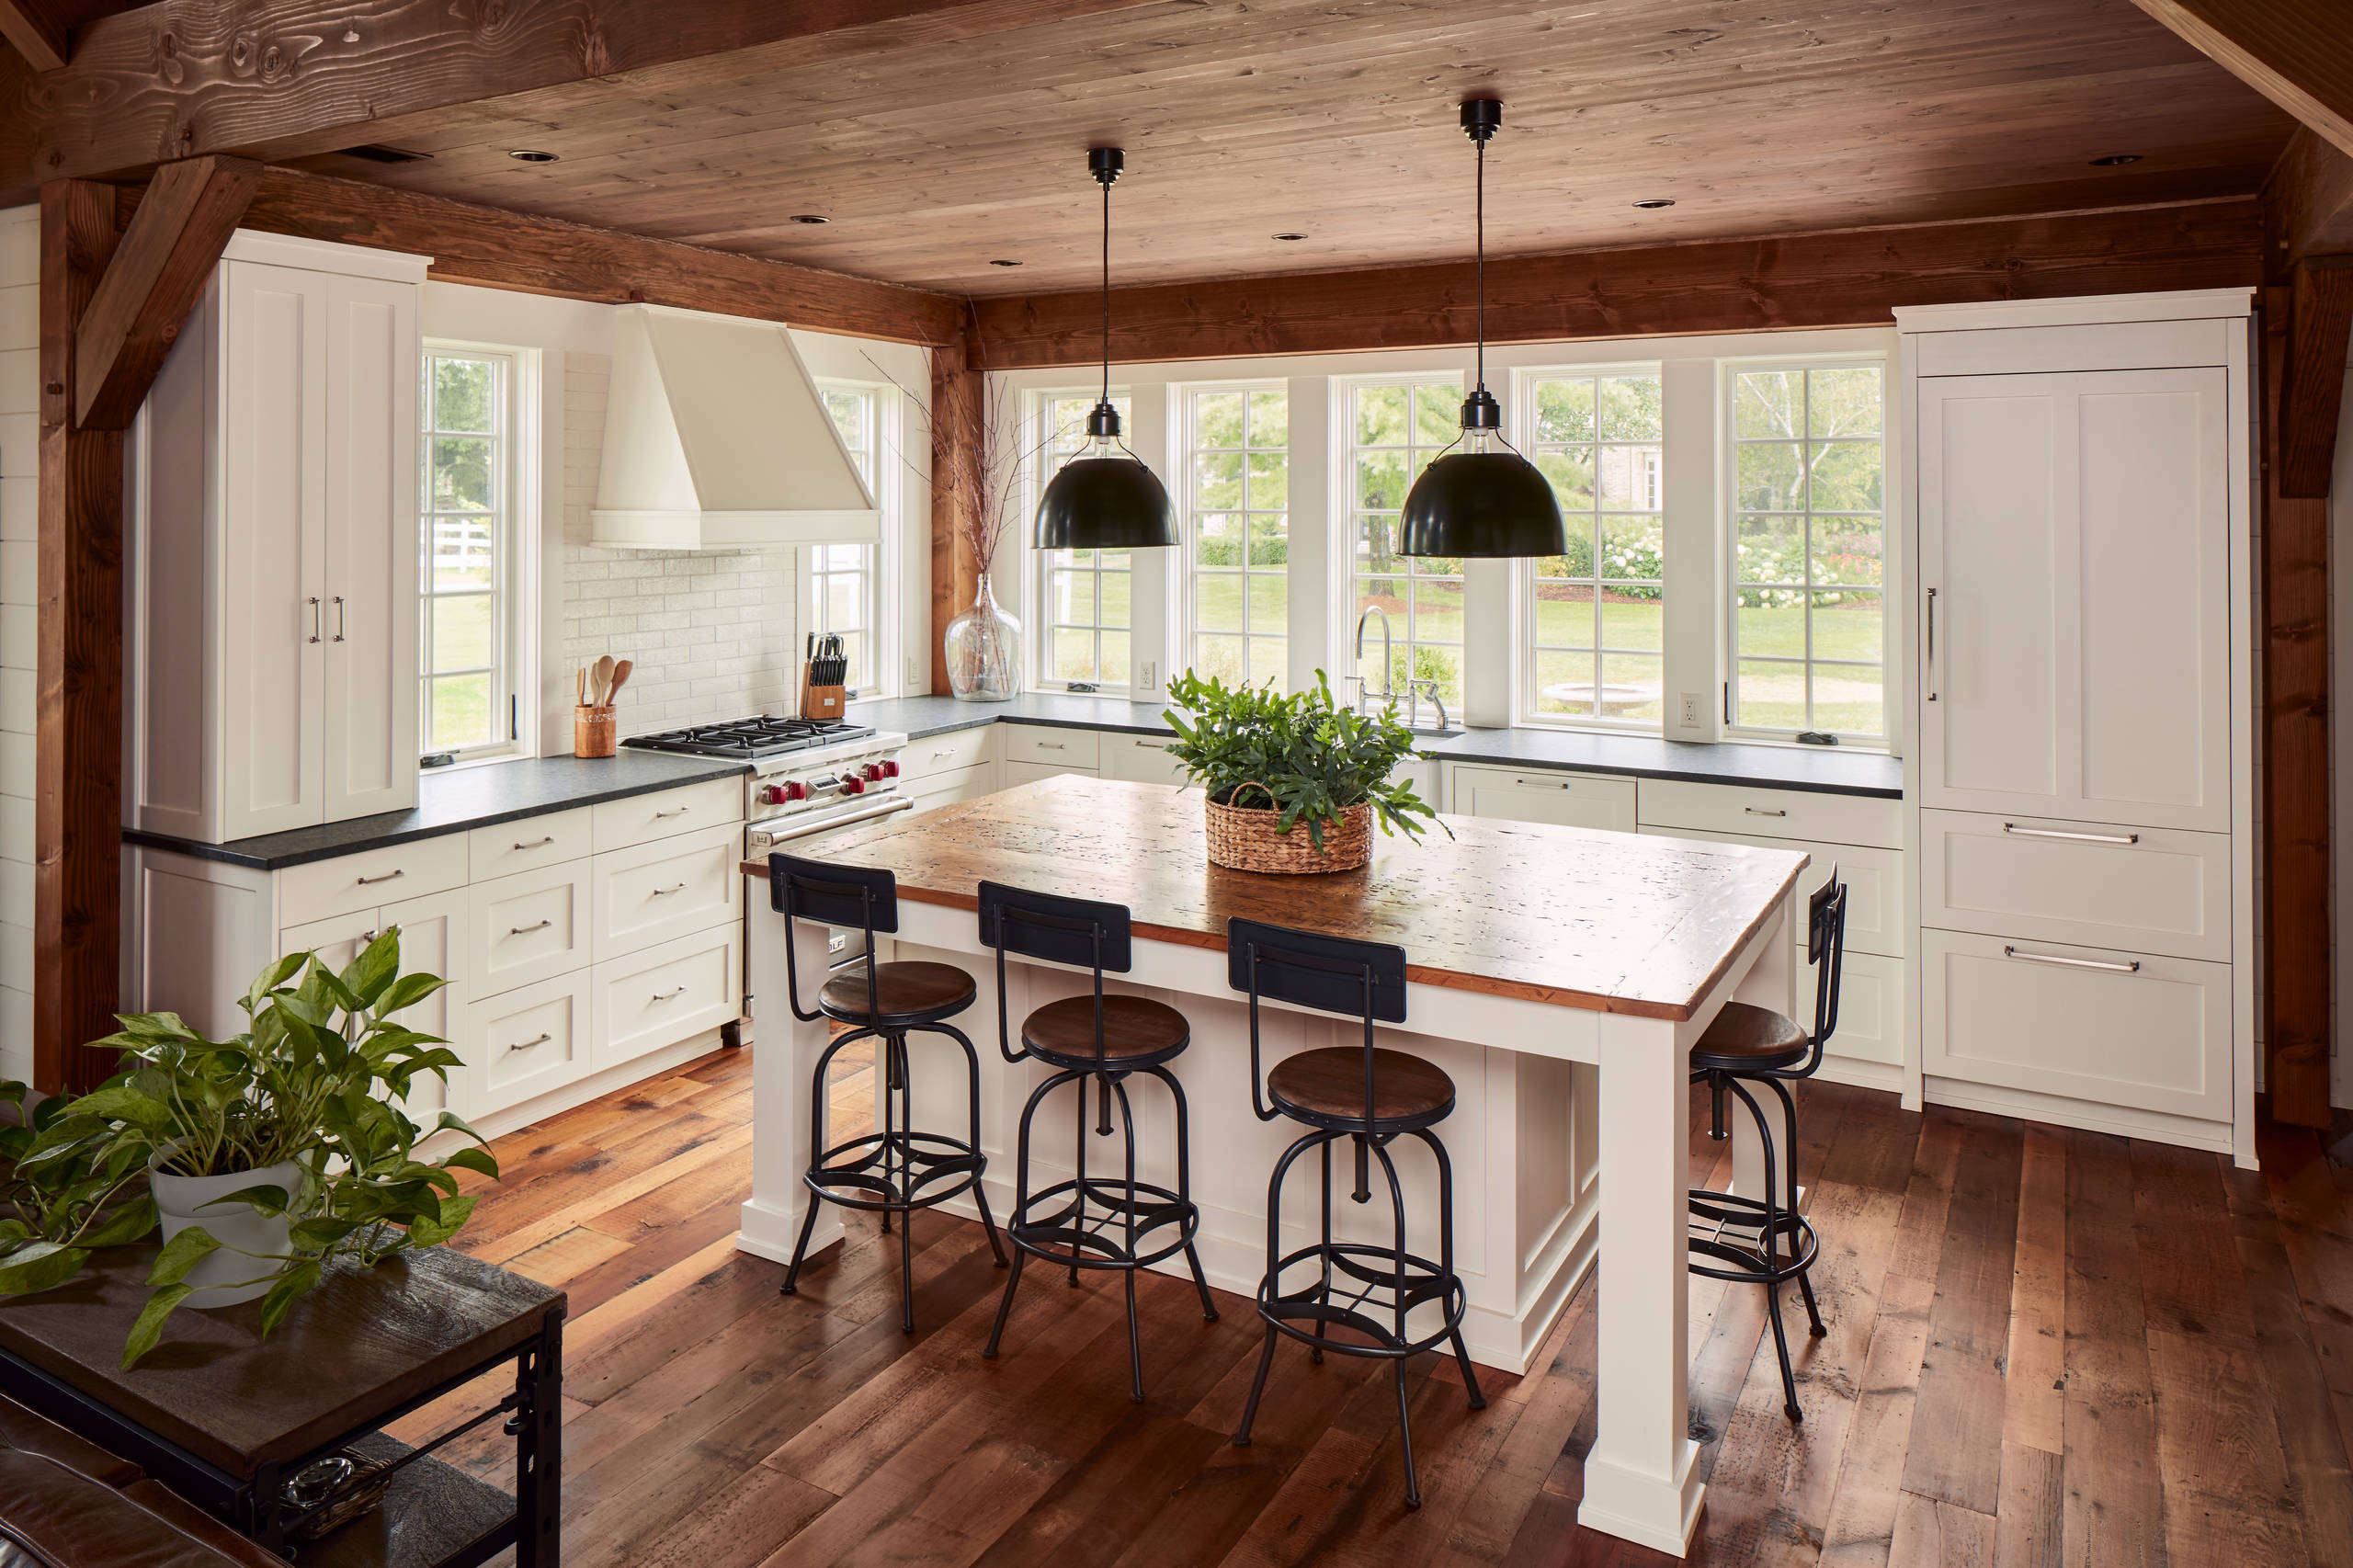 75 Beautiful Farmhouse Kitchen With Black Countertops Pictures Ideas December 2020 Houzz